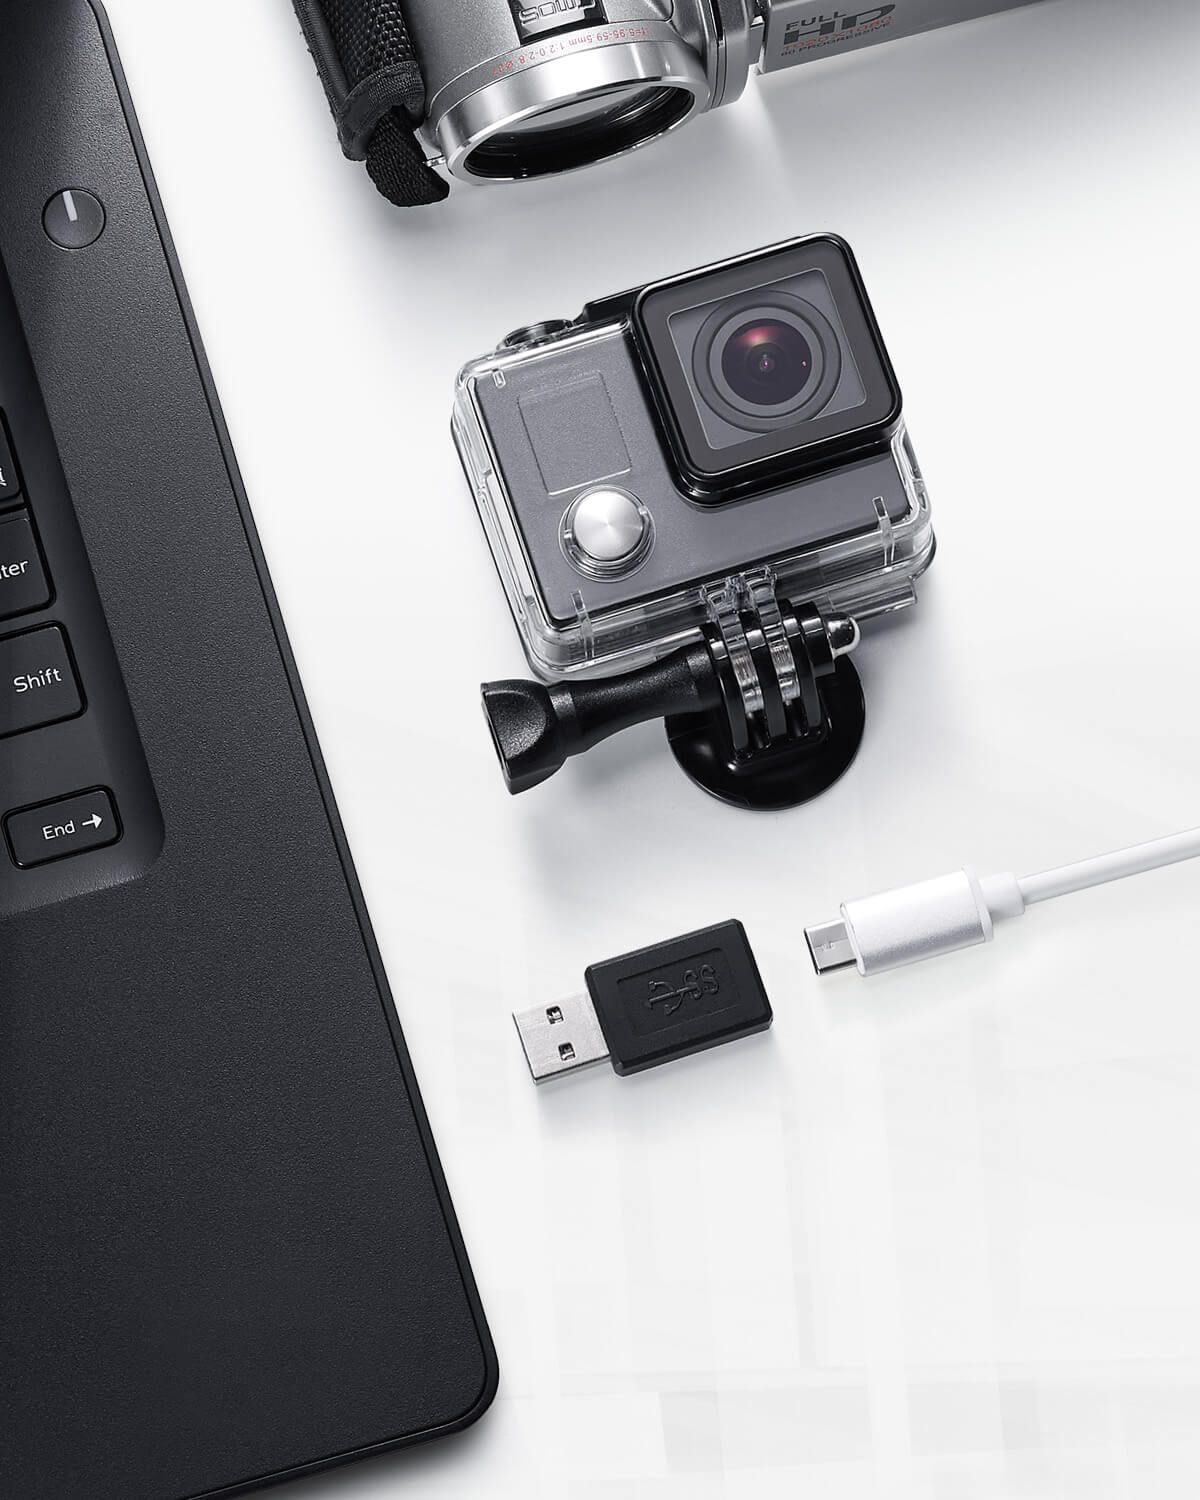 CAMLIVE™ (HDMI to USB-C UVC Video Capture)-7